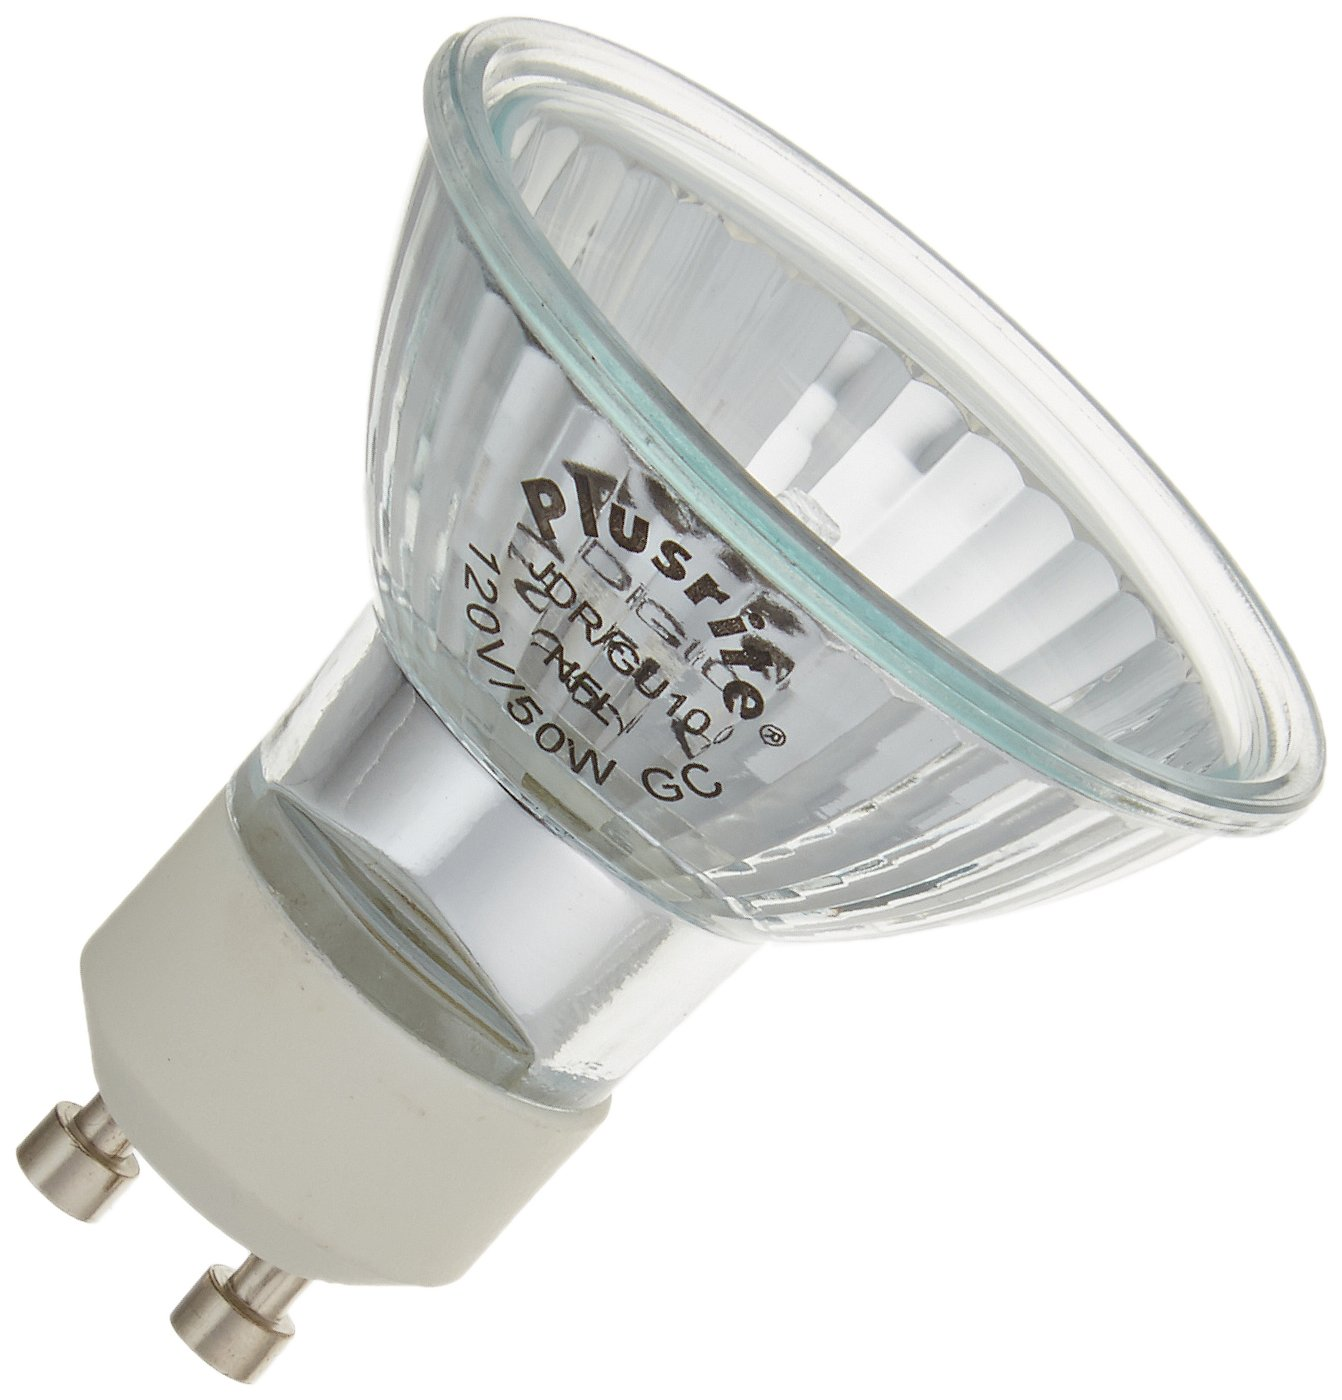 Plusrite 3463 50W GU10 MR16 Halogen Light Bulb